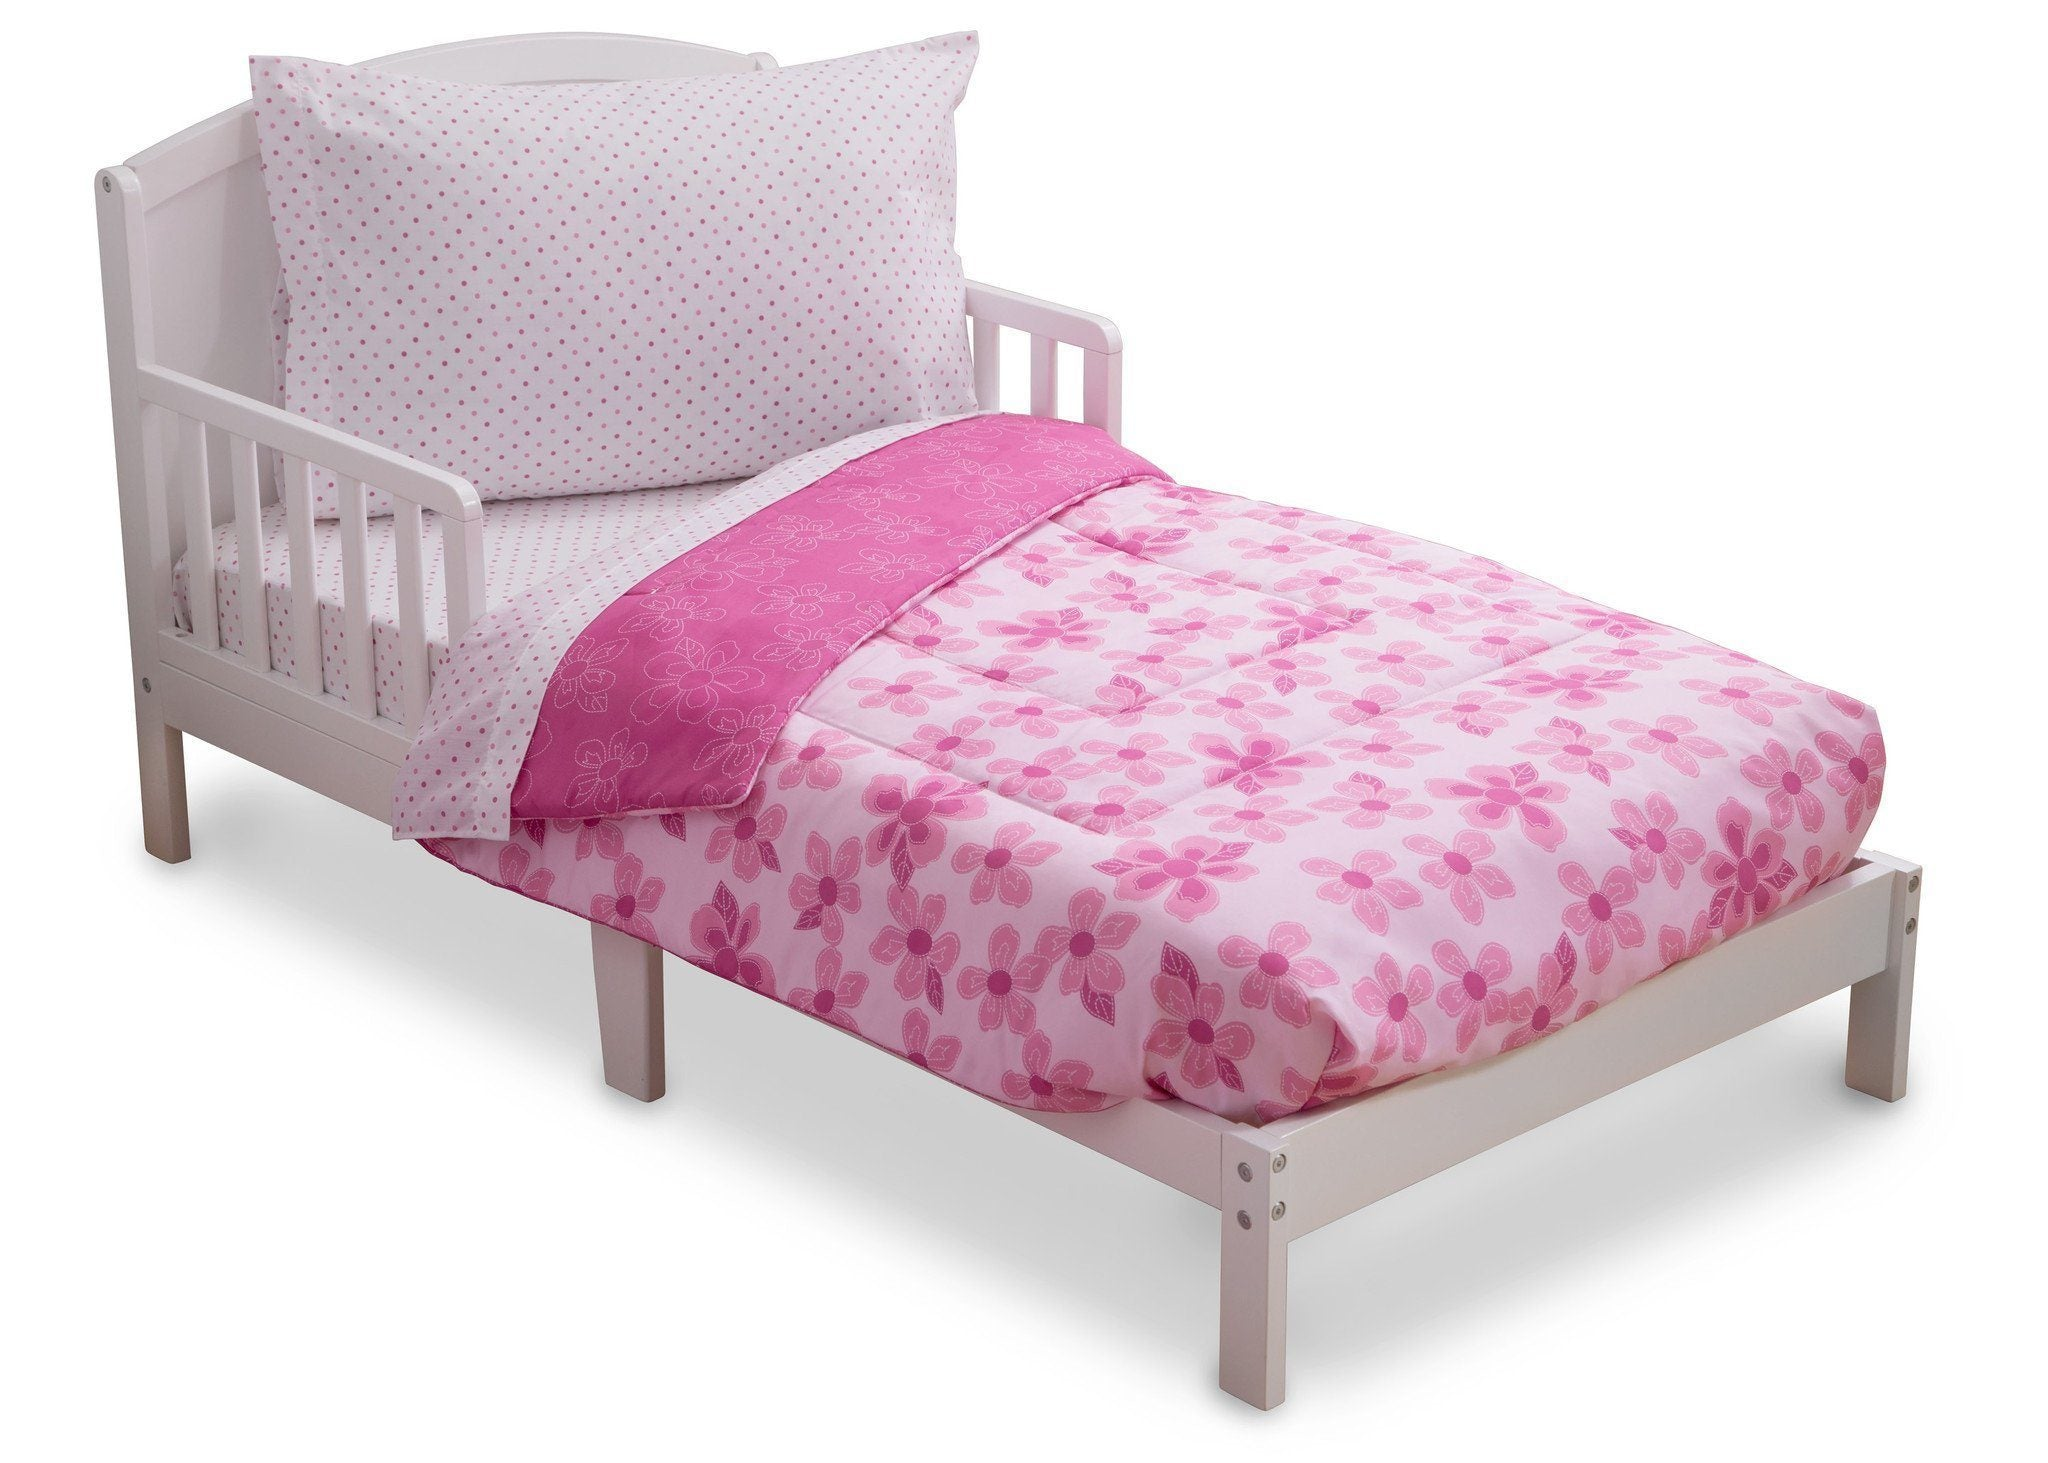 Girl 4-Piece Toddler Bedding Set, Floral and Polka Dot (2000) a3a